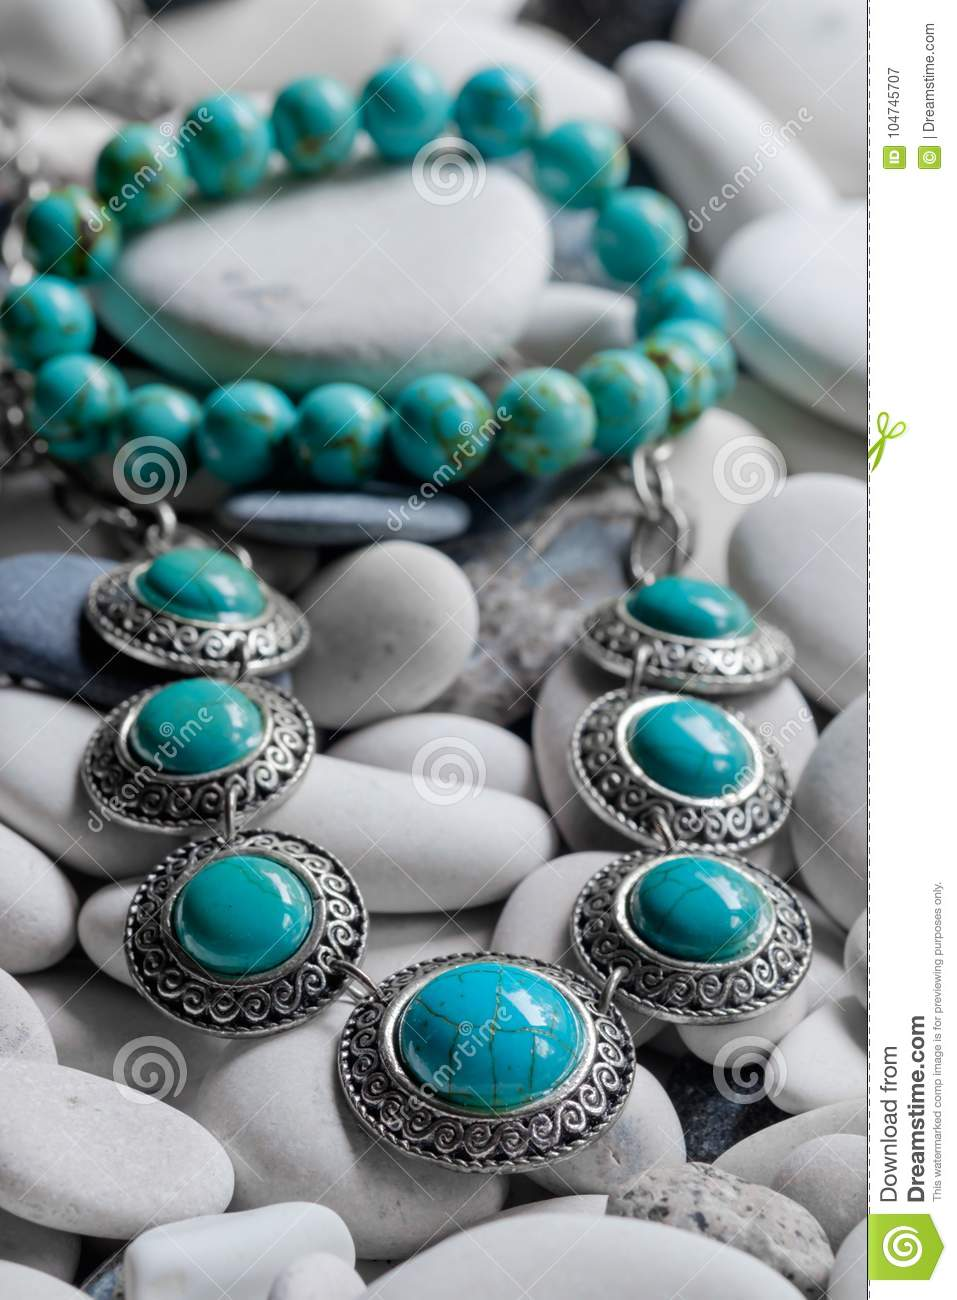 Silver jewelry on pebbles